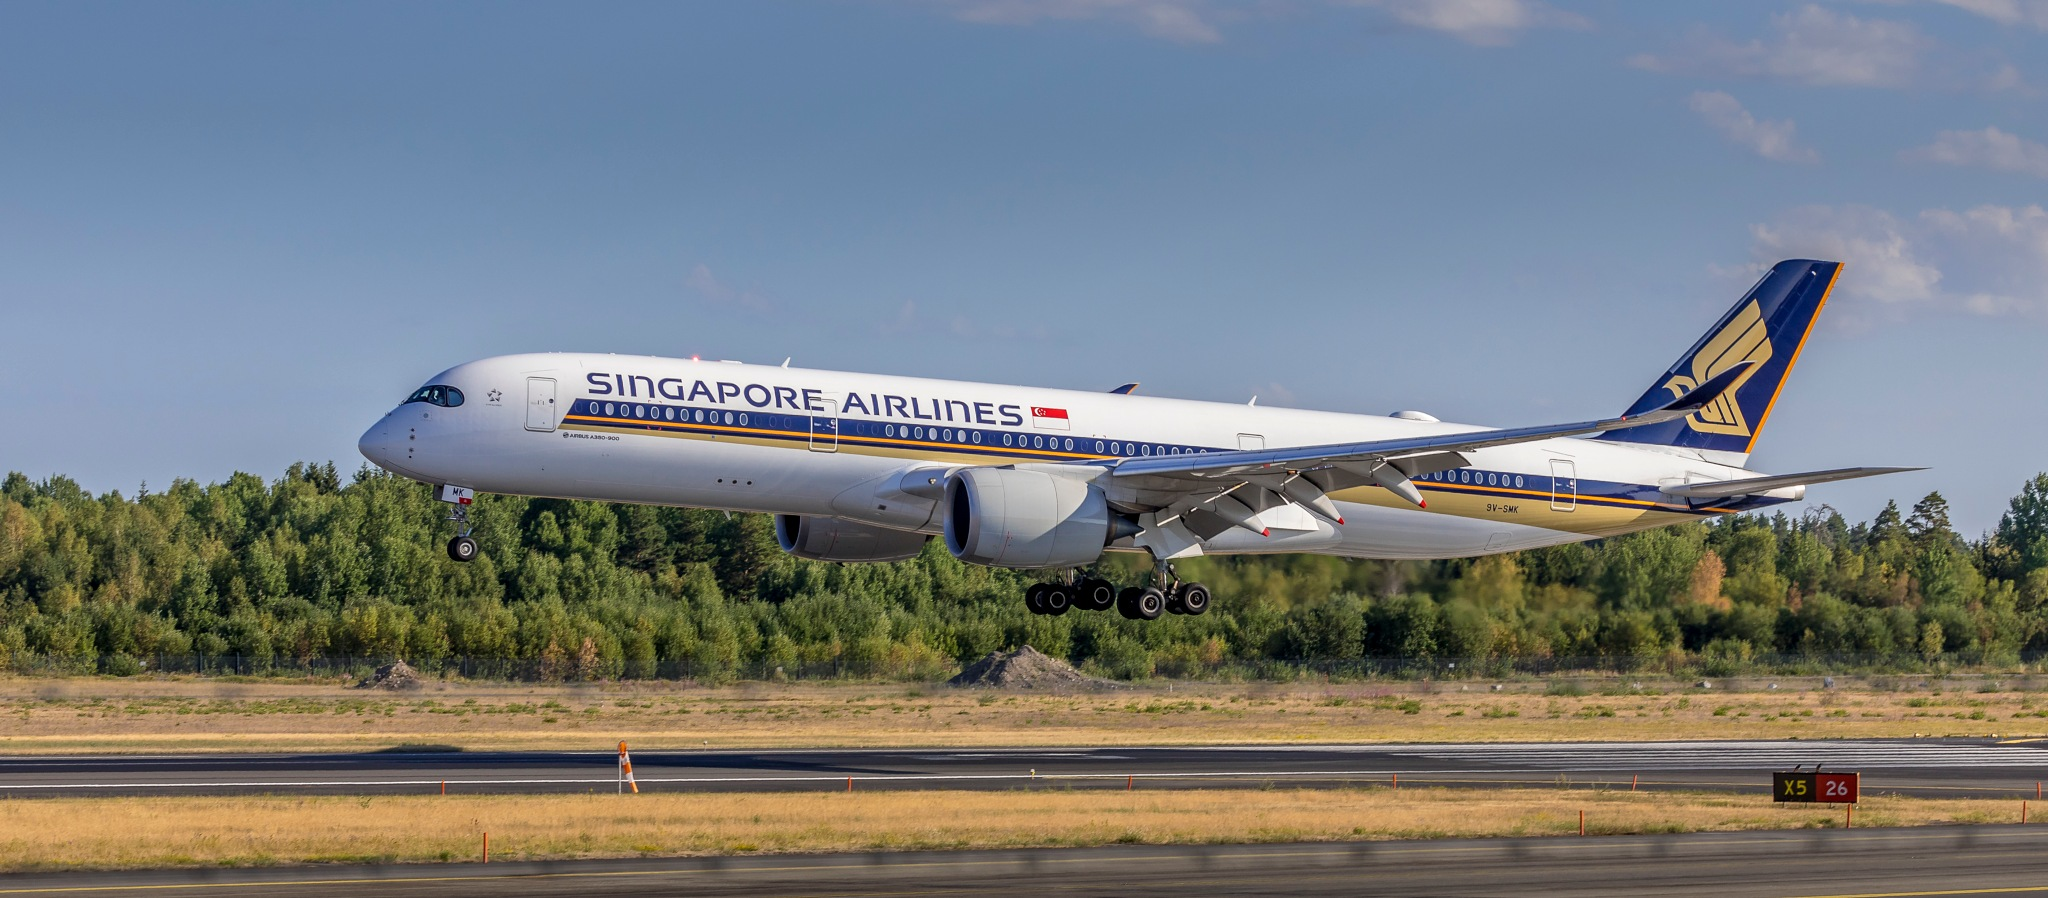 Singapore Airlines by Kim Jonsson